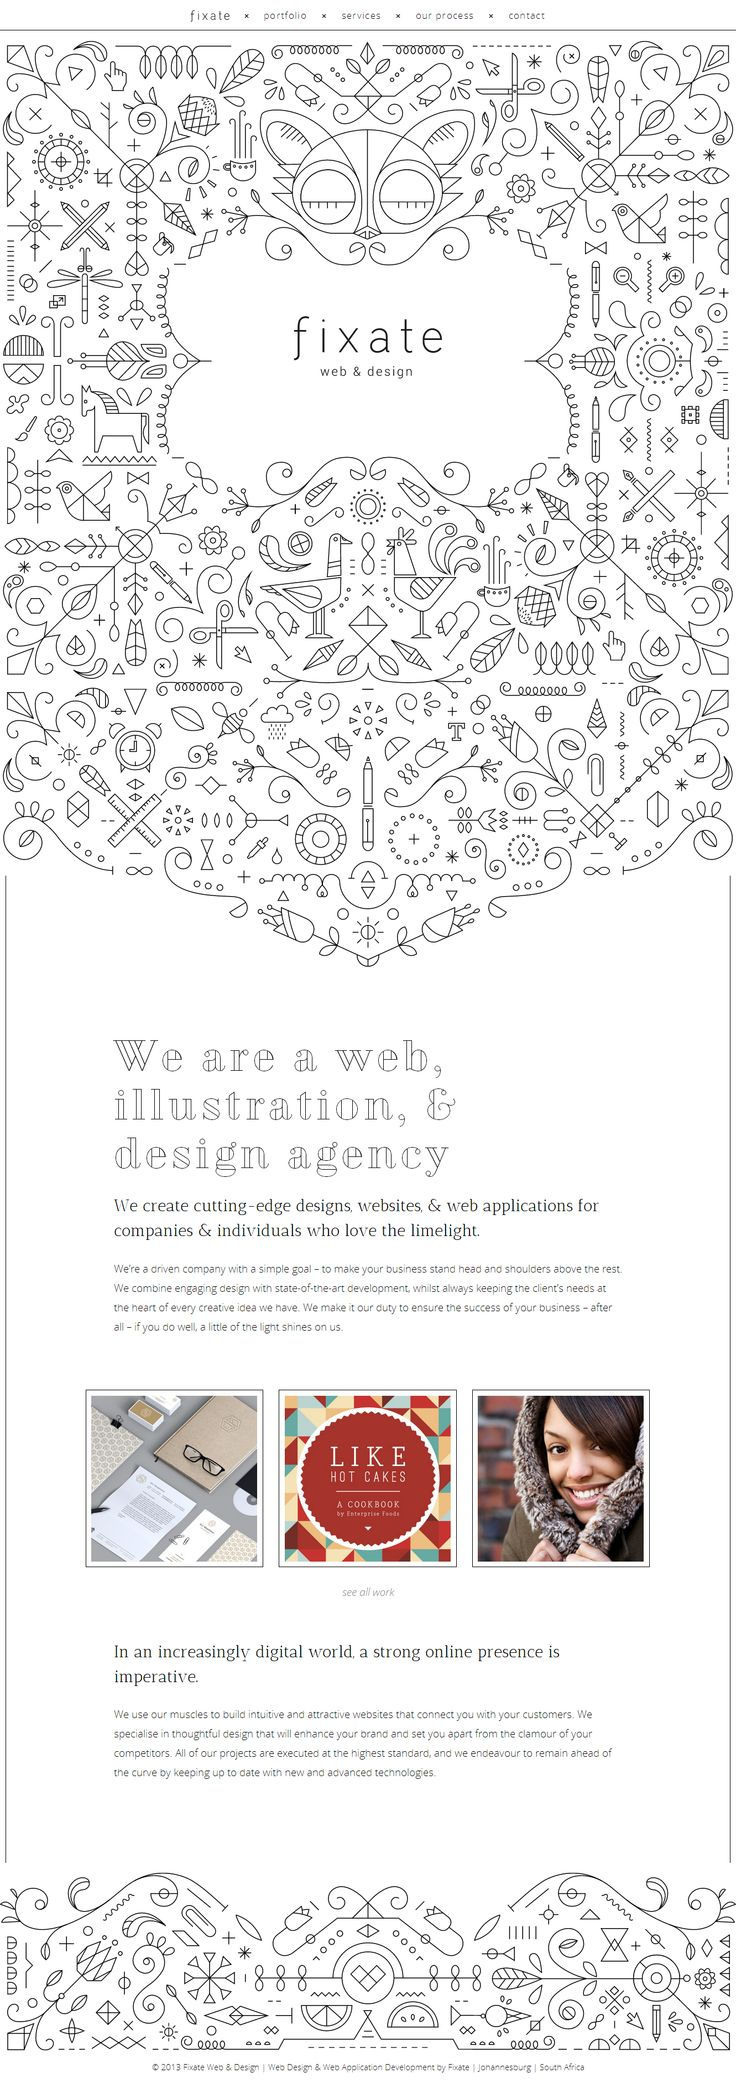 crazy cool illustration used to make a simple yet dynamic site http://fixate.it/